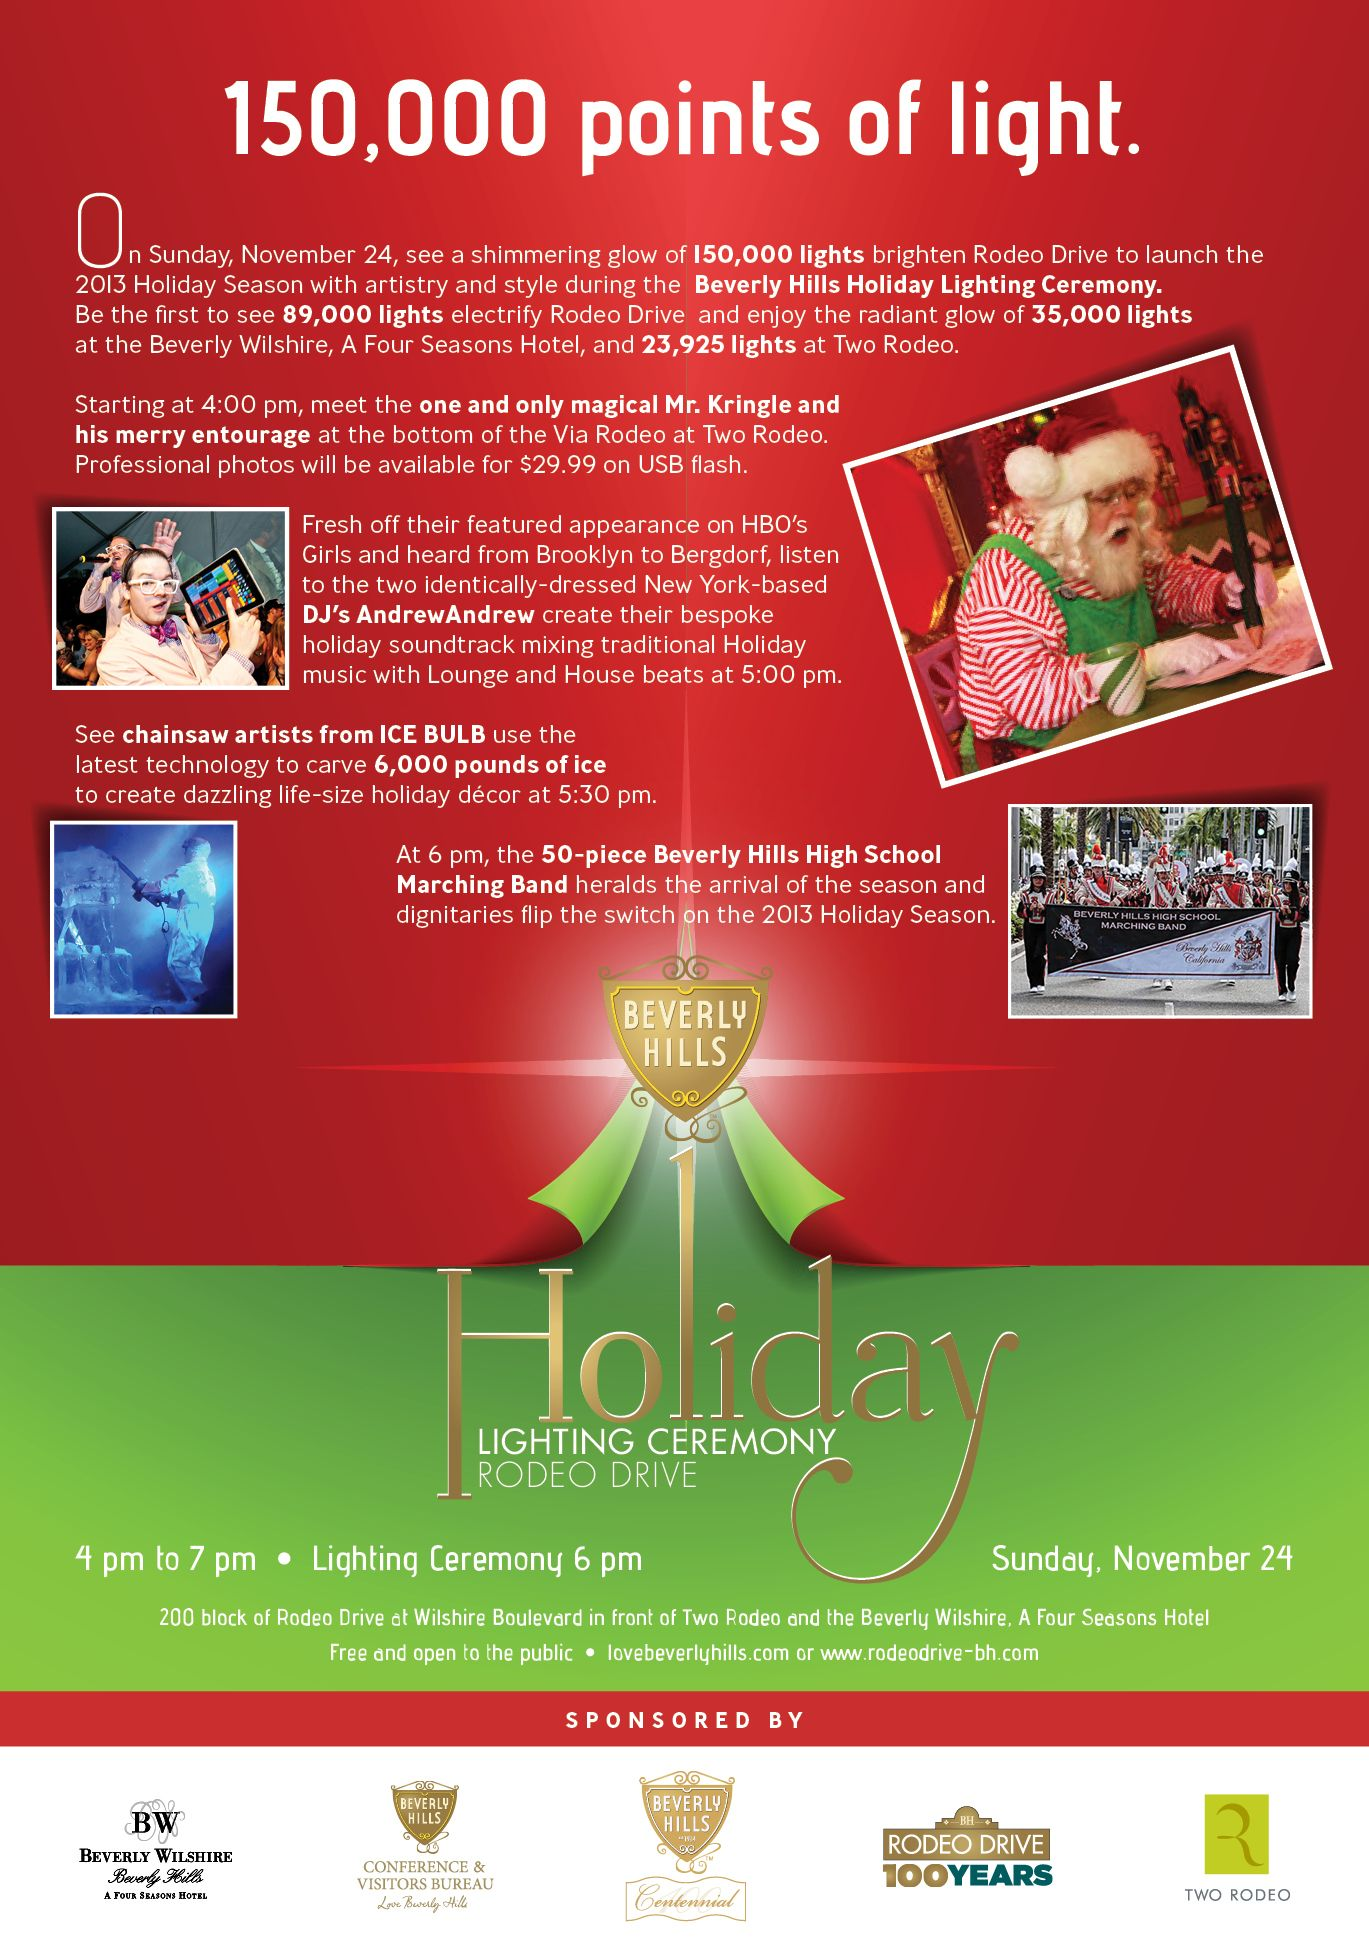 You Re Invited Join Us On November 24th As We Light Up The Town At Our Rodeo Drive Holiday Lighting Ceremony Bwholiday Holiday Lights Festival Decorations Holiday